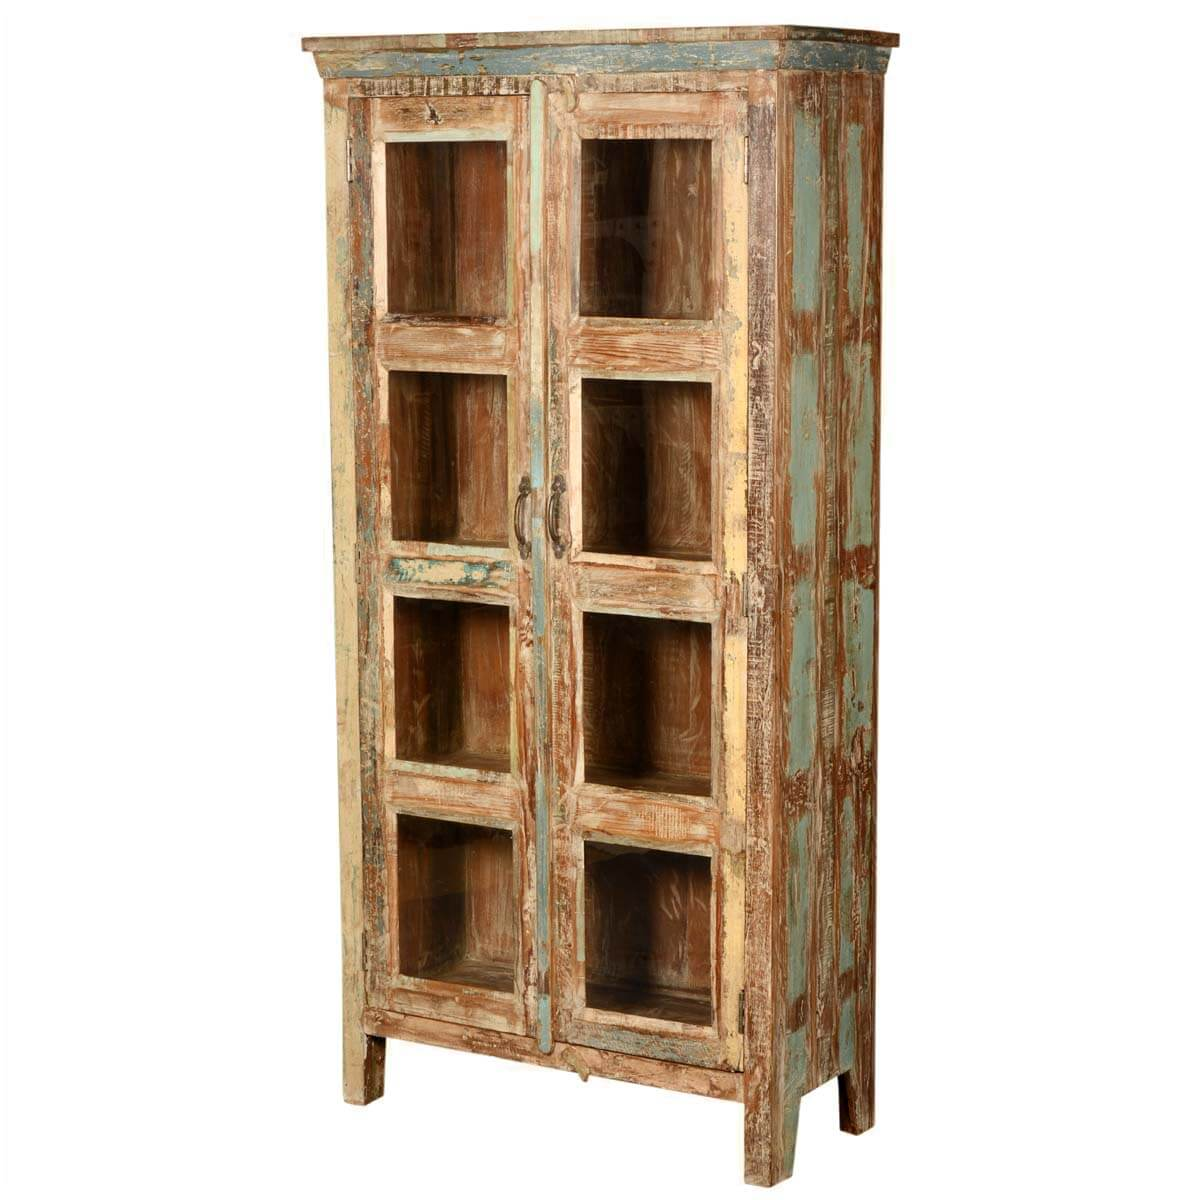 Reclaimed Wood Cabinets ~ New memories reclaimed wood window curio armoire cabinet